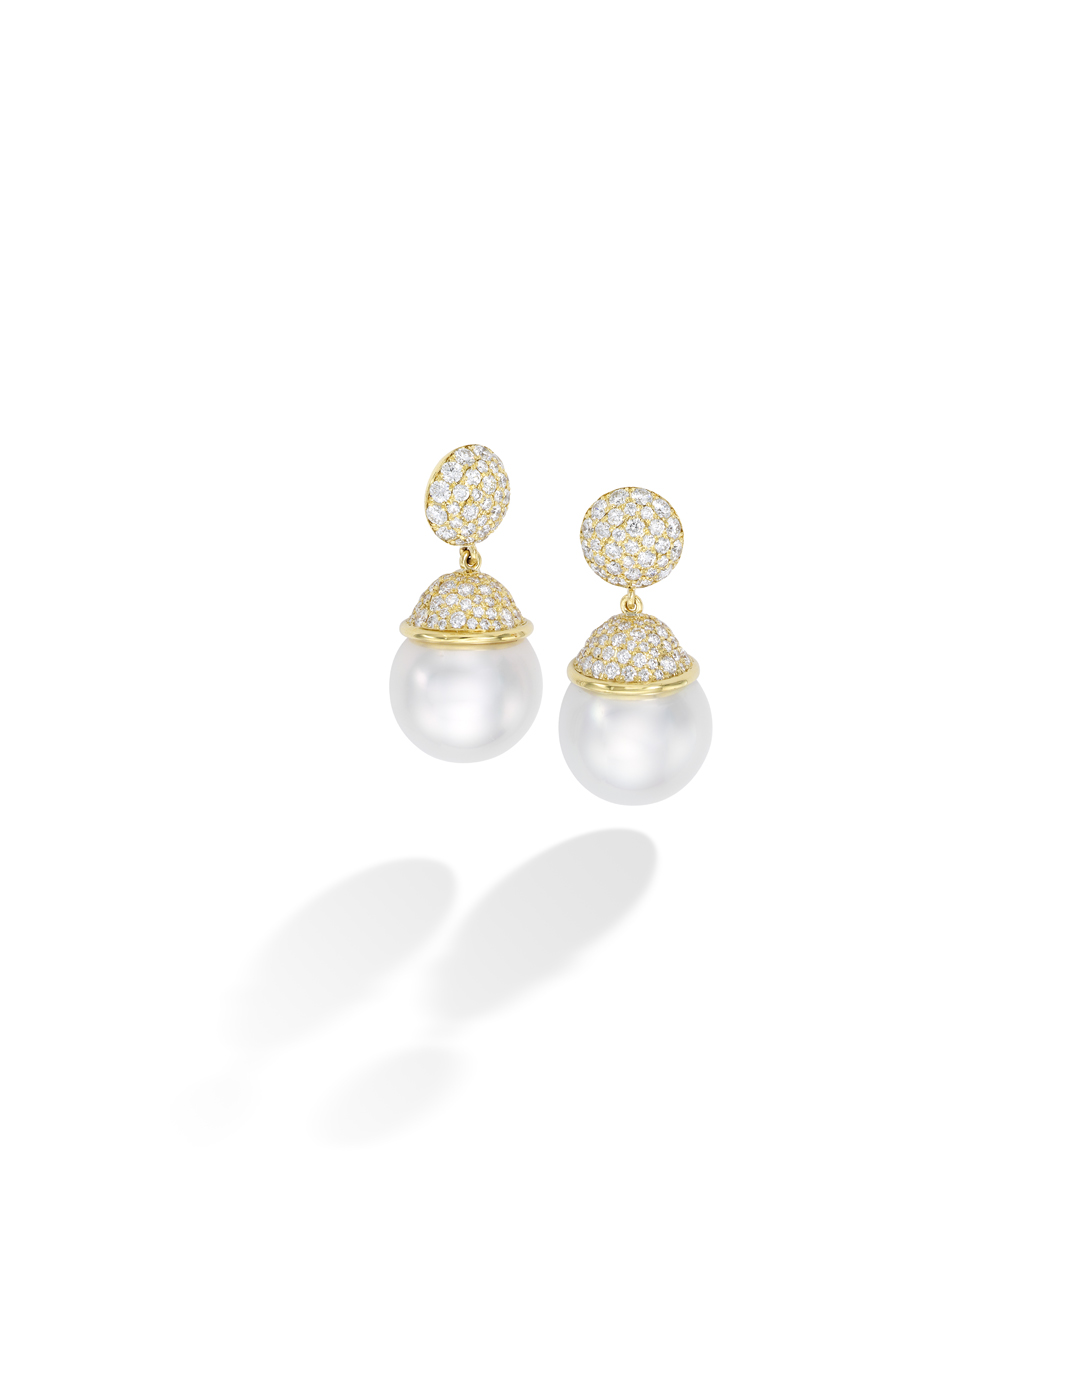 mish_products_earrings_Hanalei-Pave-Dome-ER-1